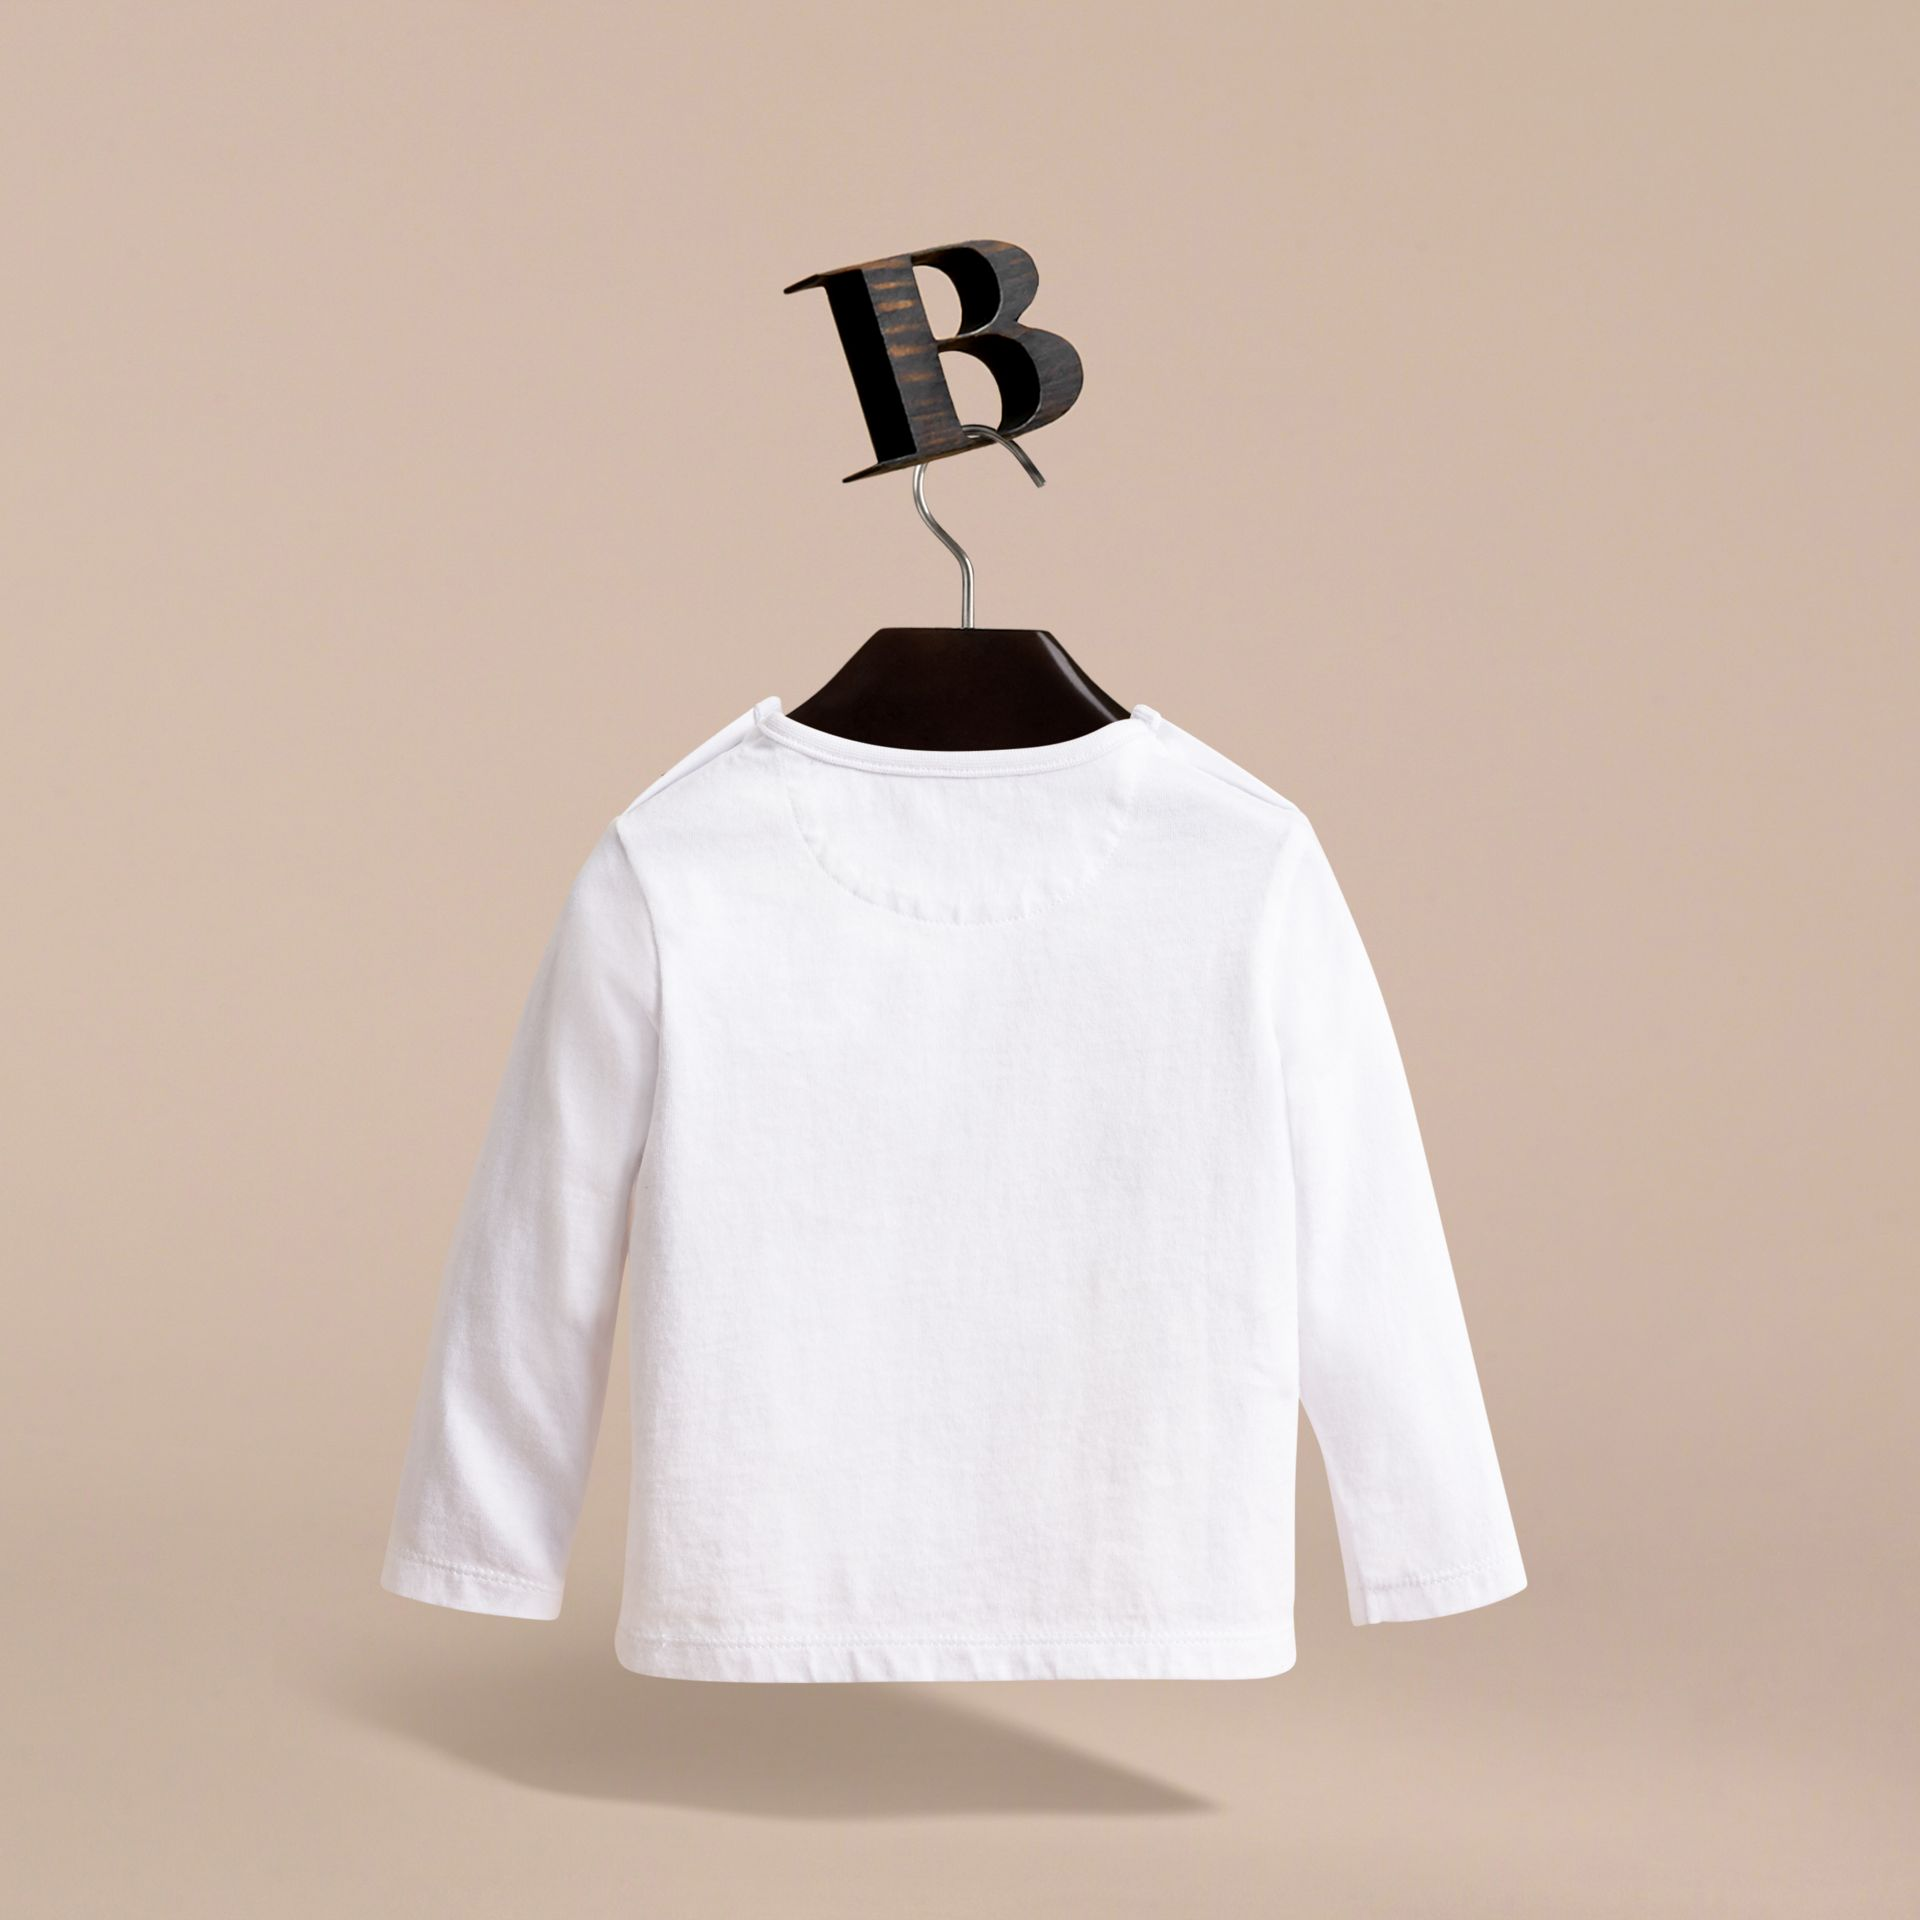 Haut en coton avec imprimé Thomas Bear Garde royale - Enfant | Burberry - photo de la galerie 4